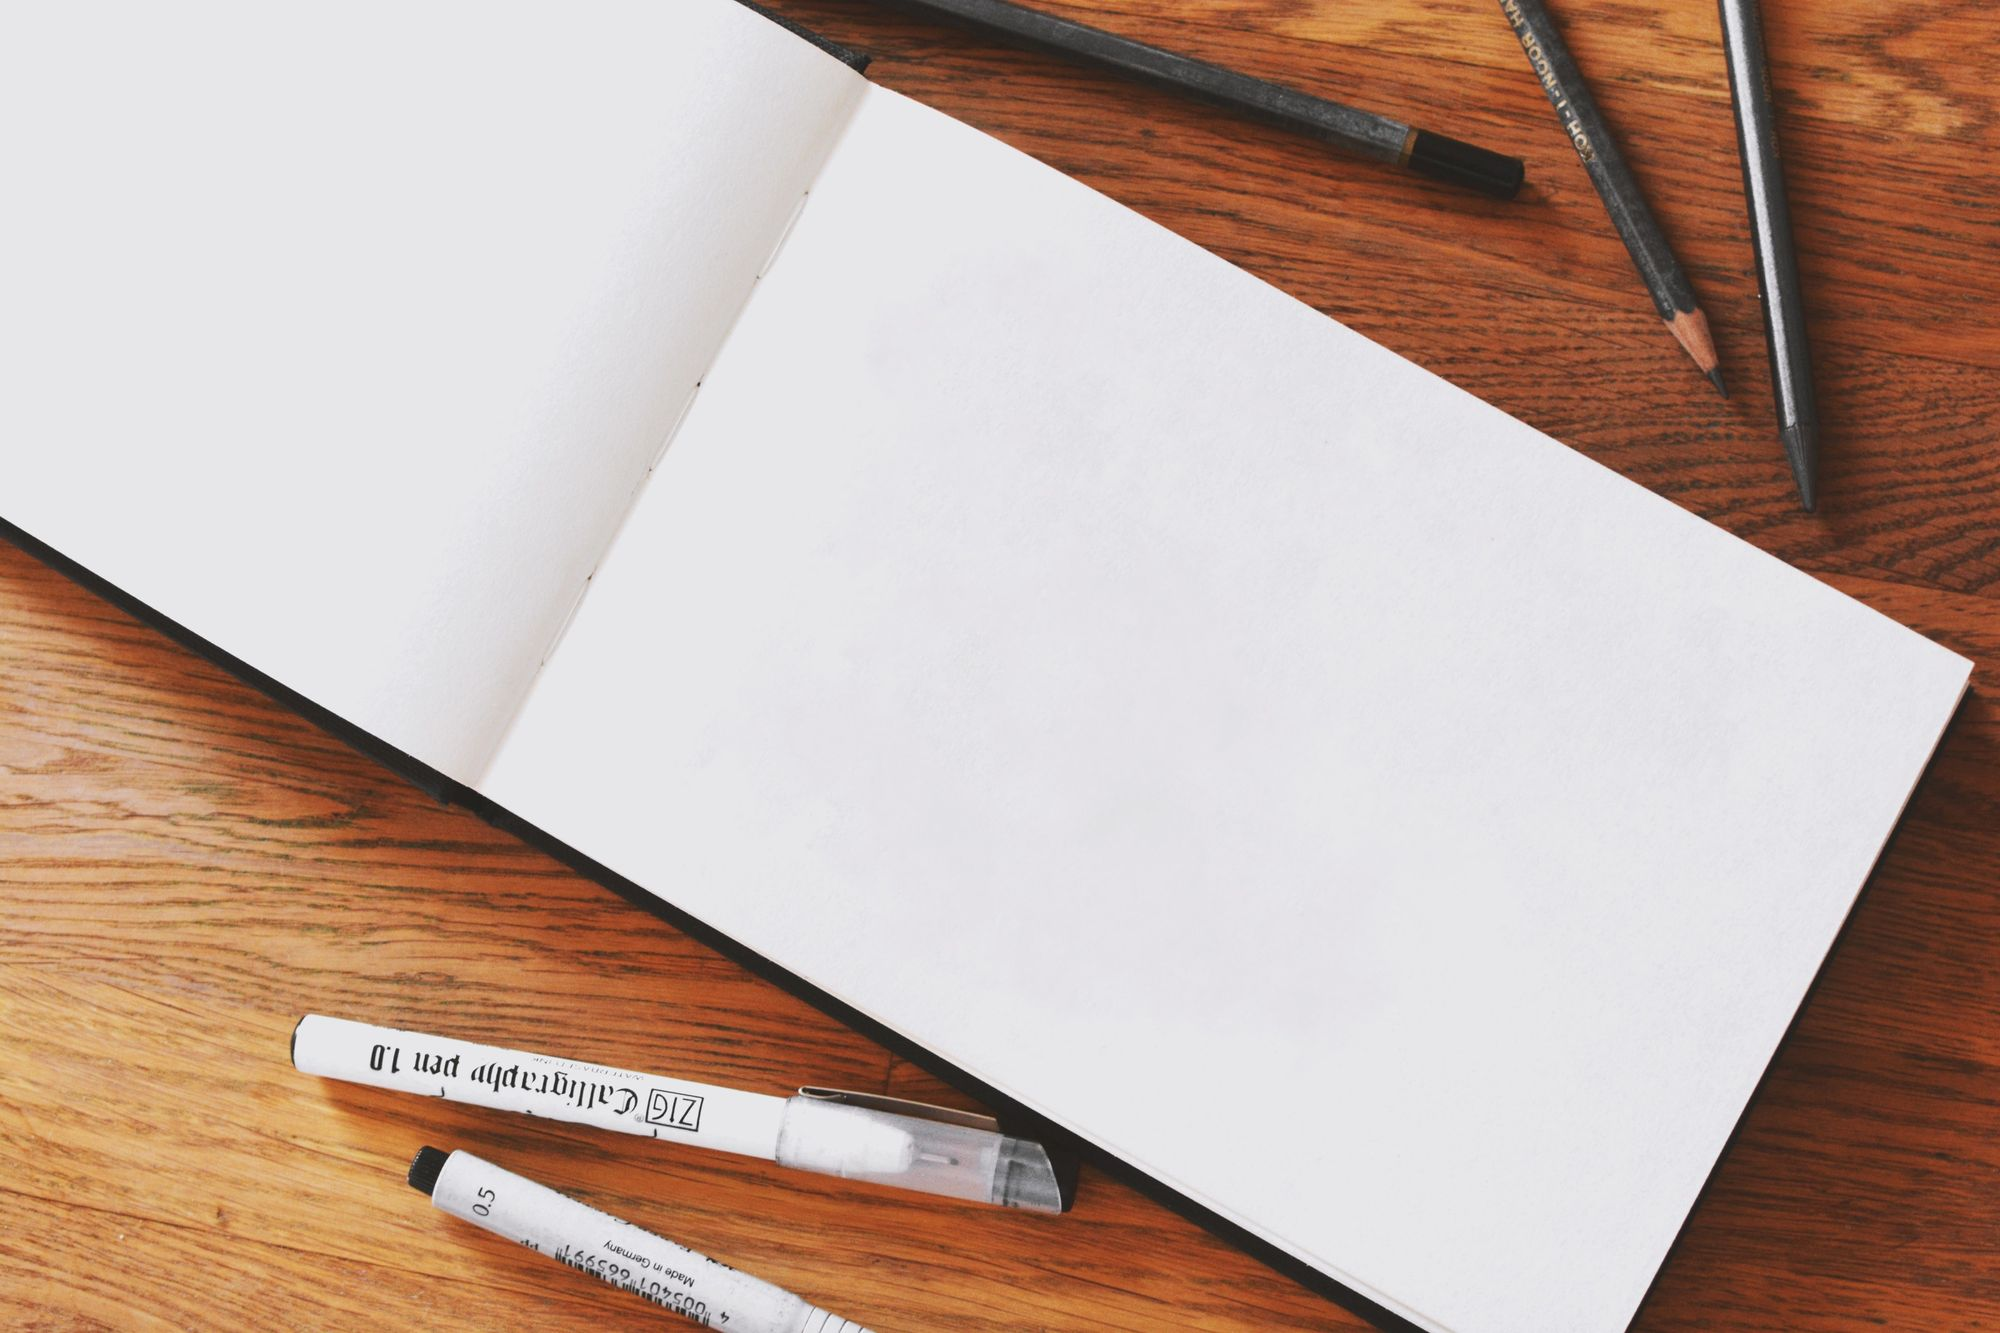 Blank notebook surrounded by pencils and markers_team building activities for work_flok